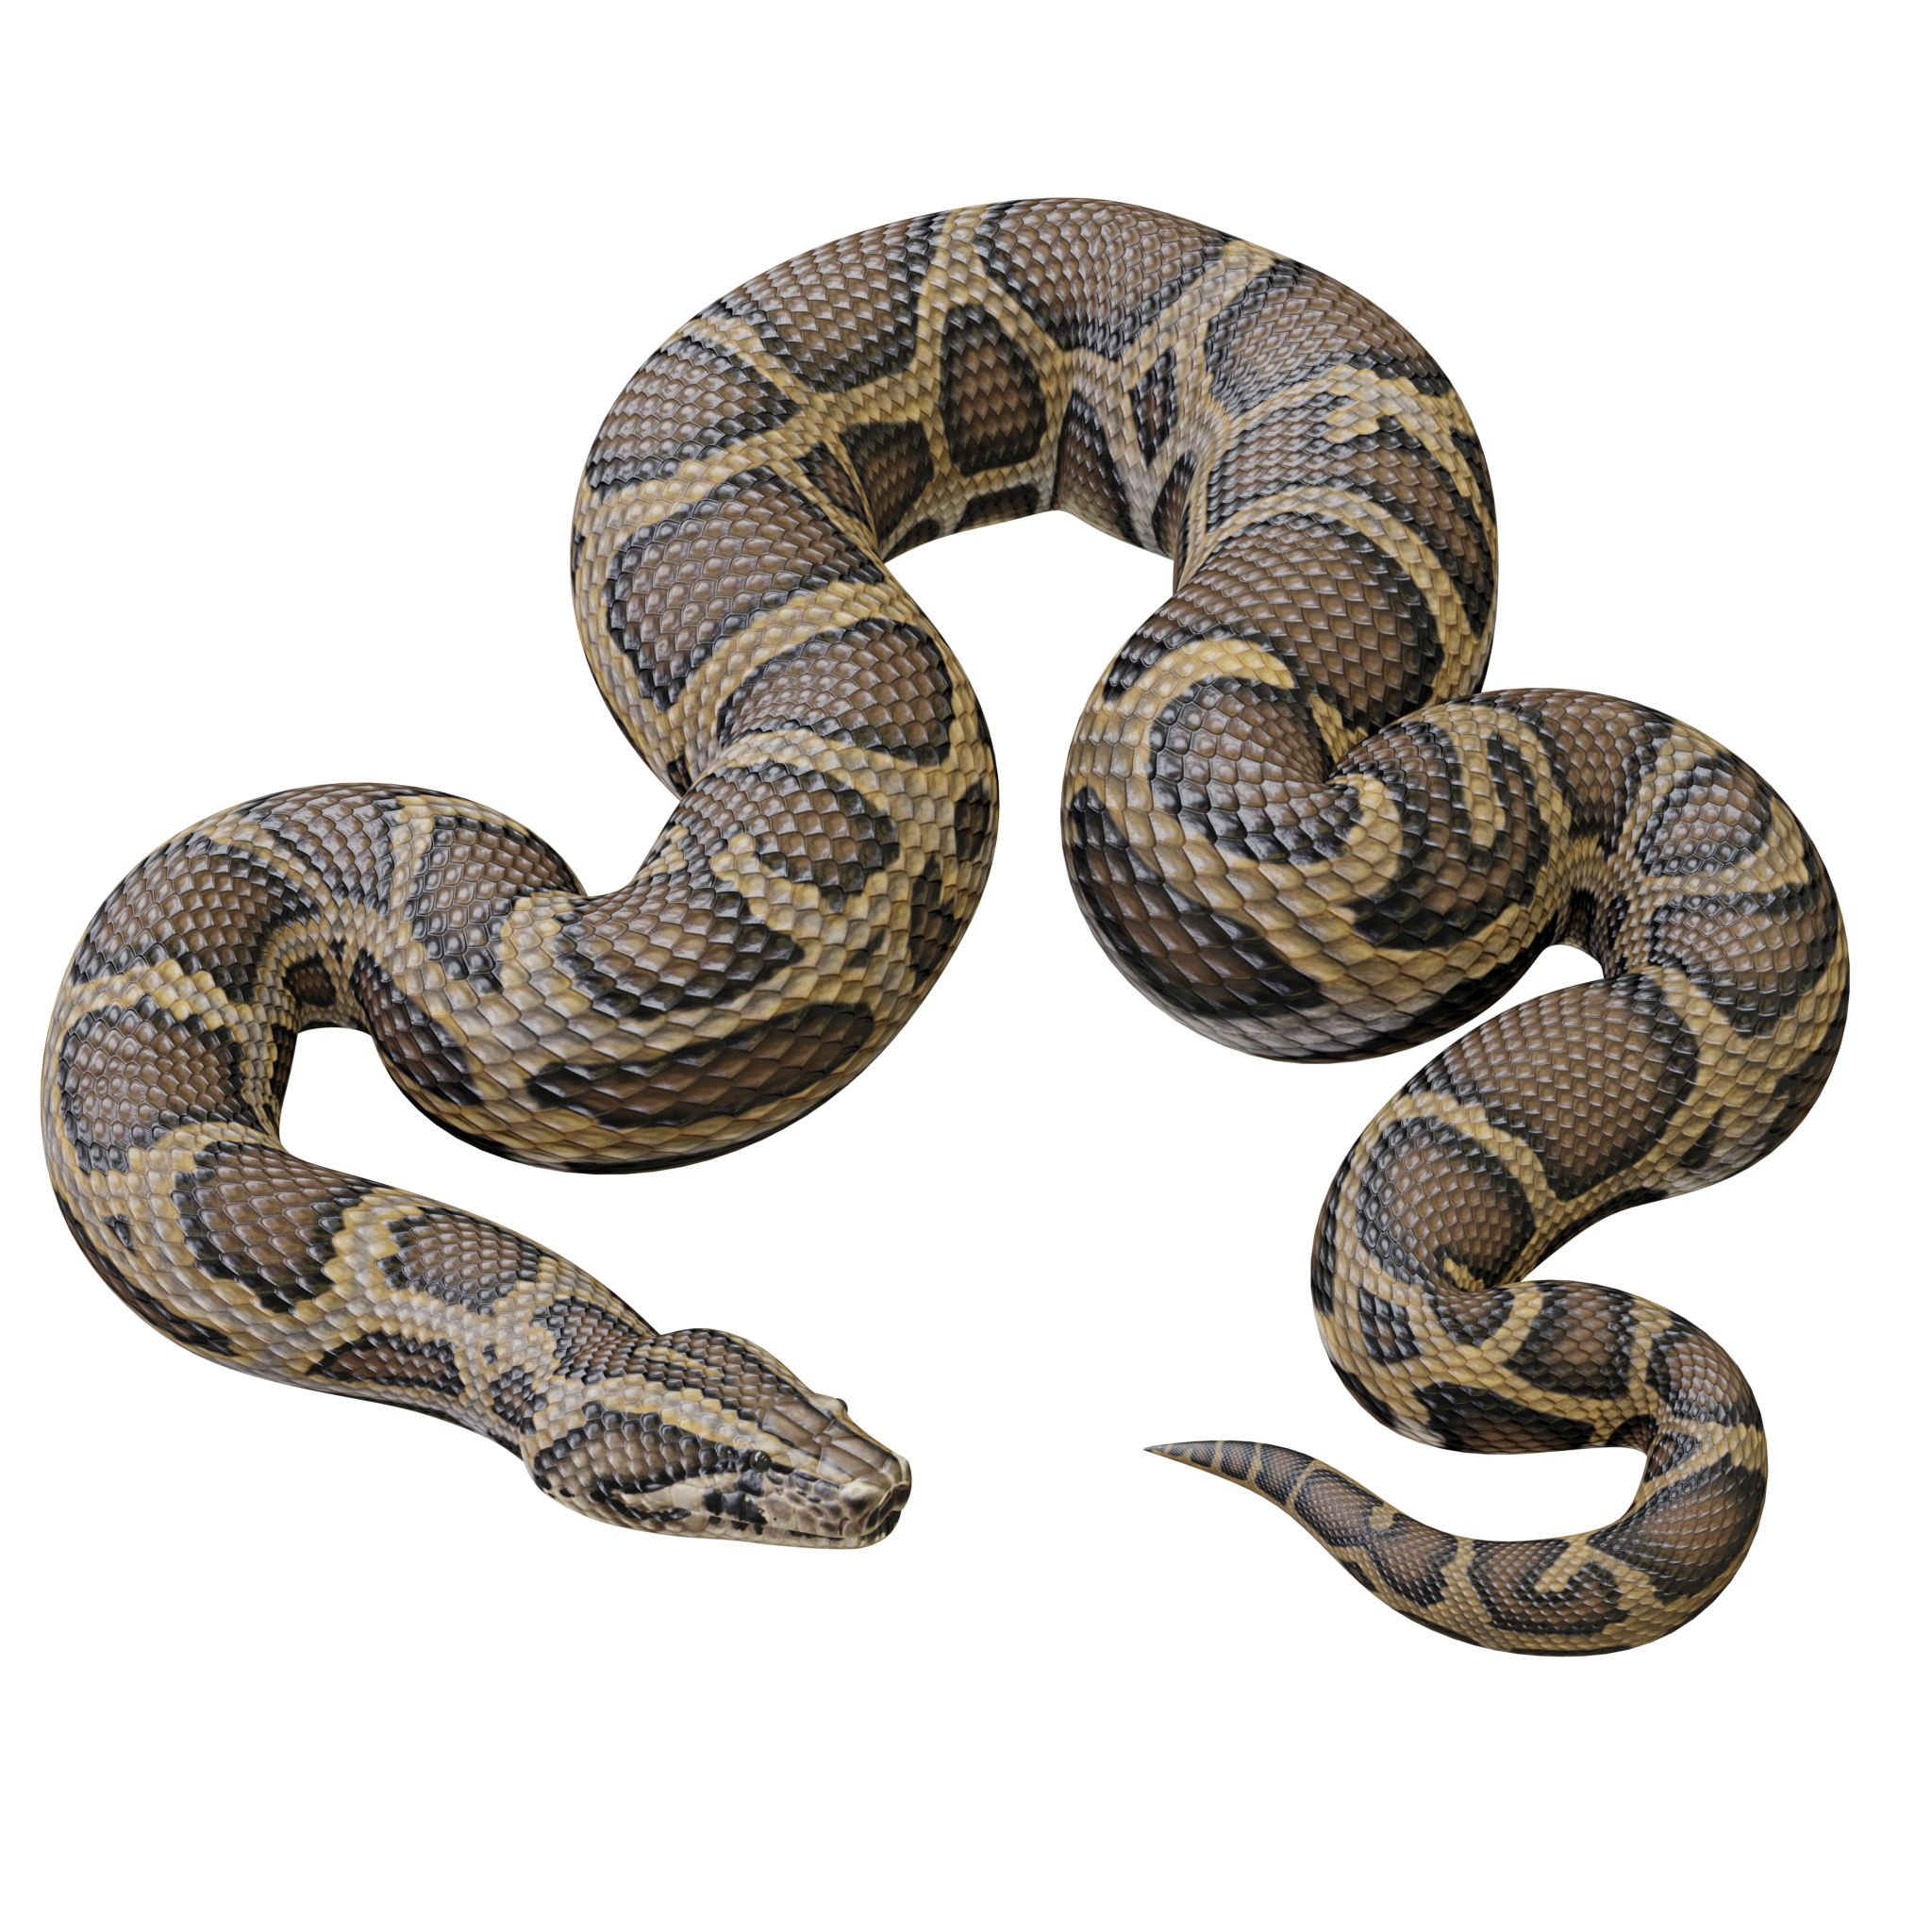 burmese python animation 3D model